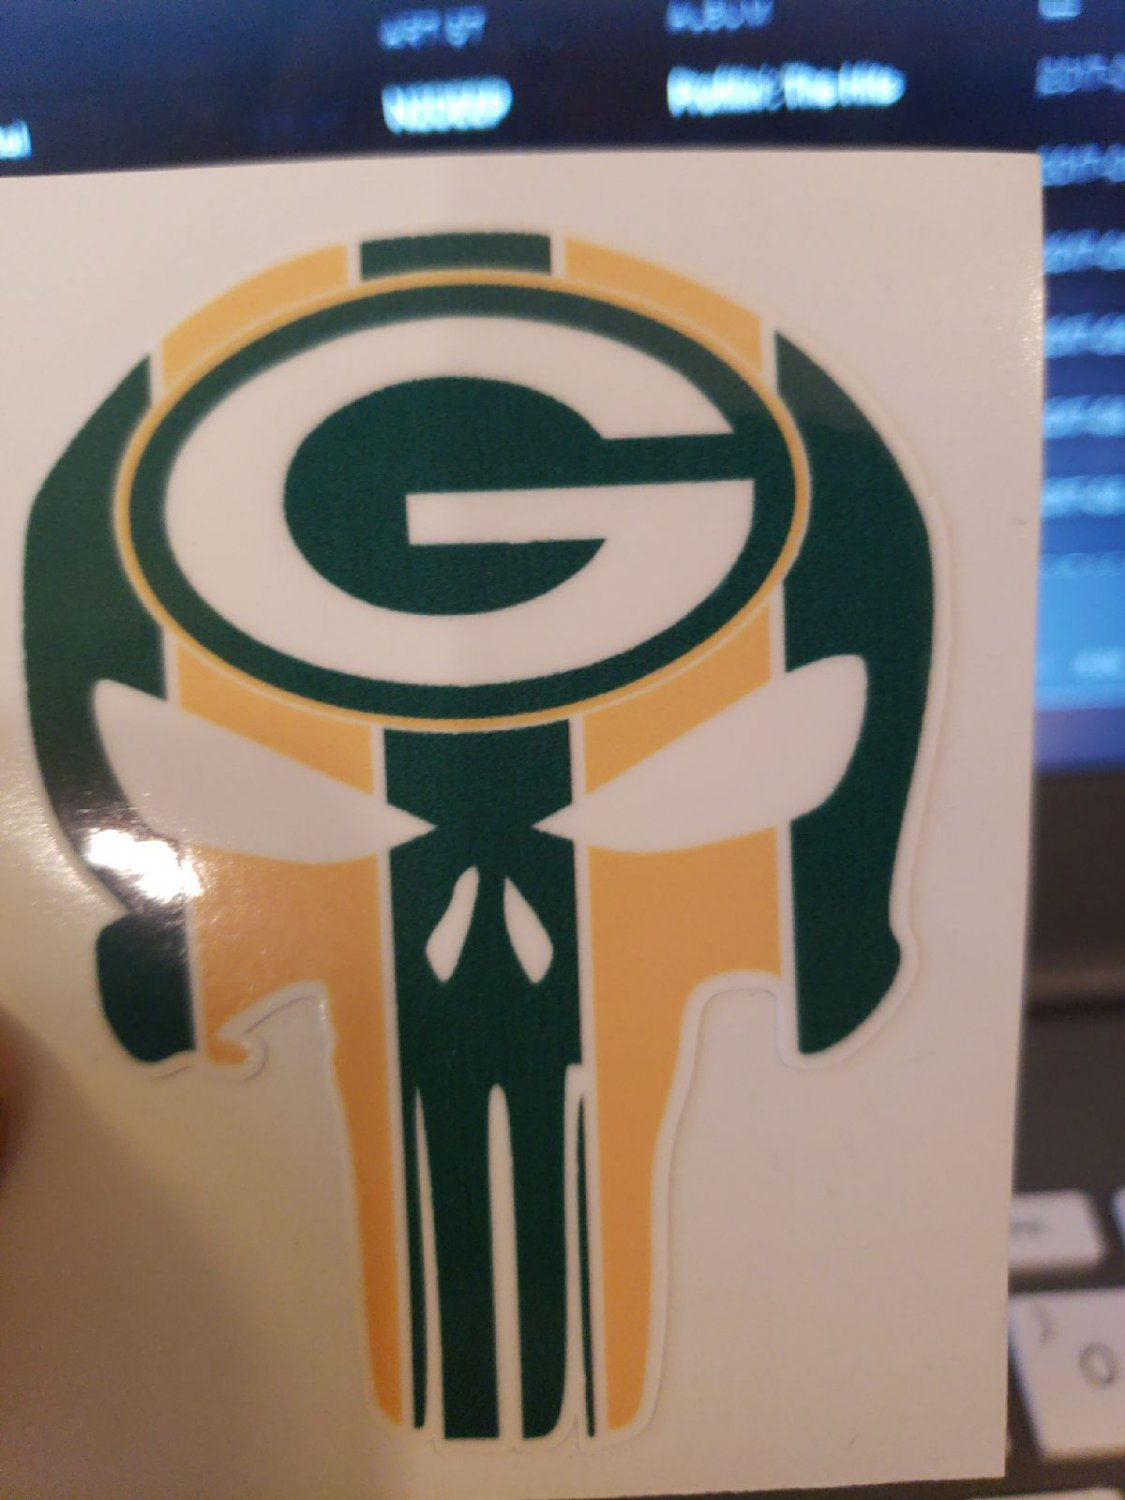 4 Inch Full Color Green Bay Packers Punisher Yeti Decal Laptop Car Truck Window Sticker